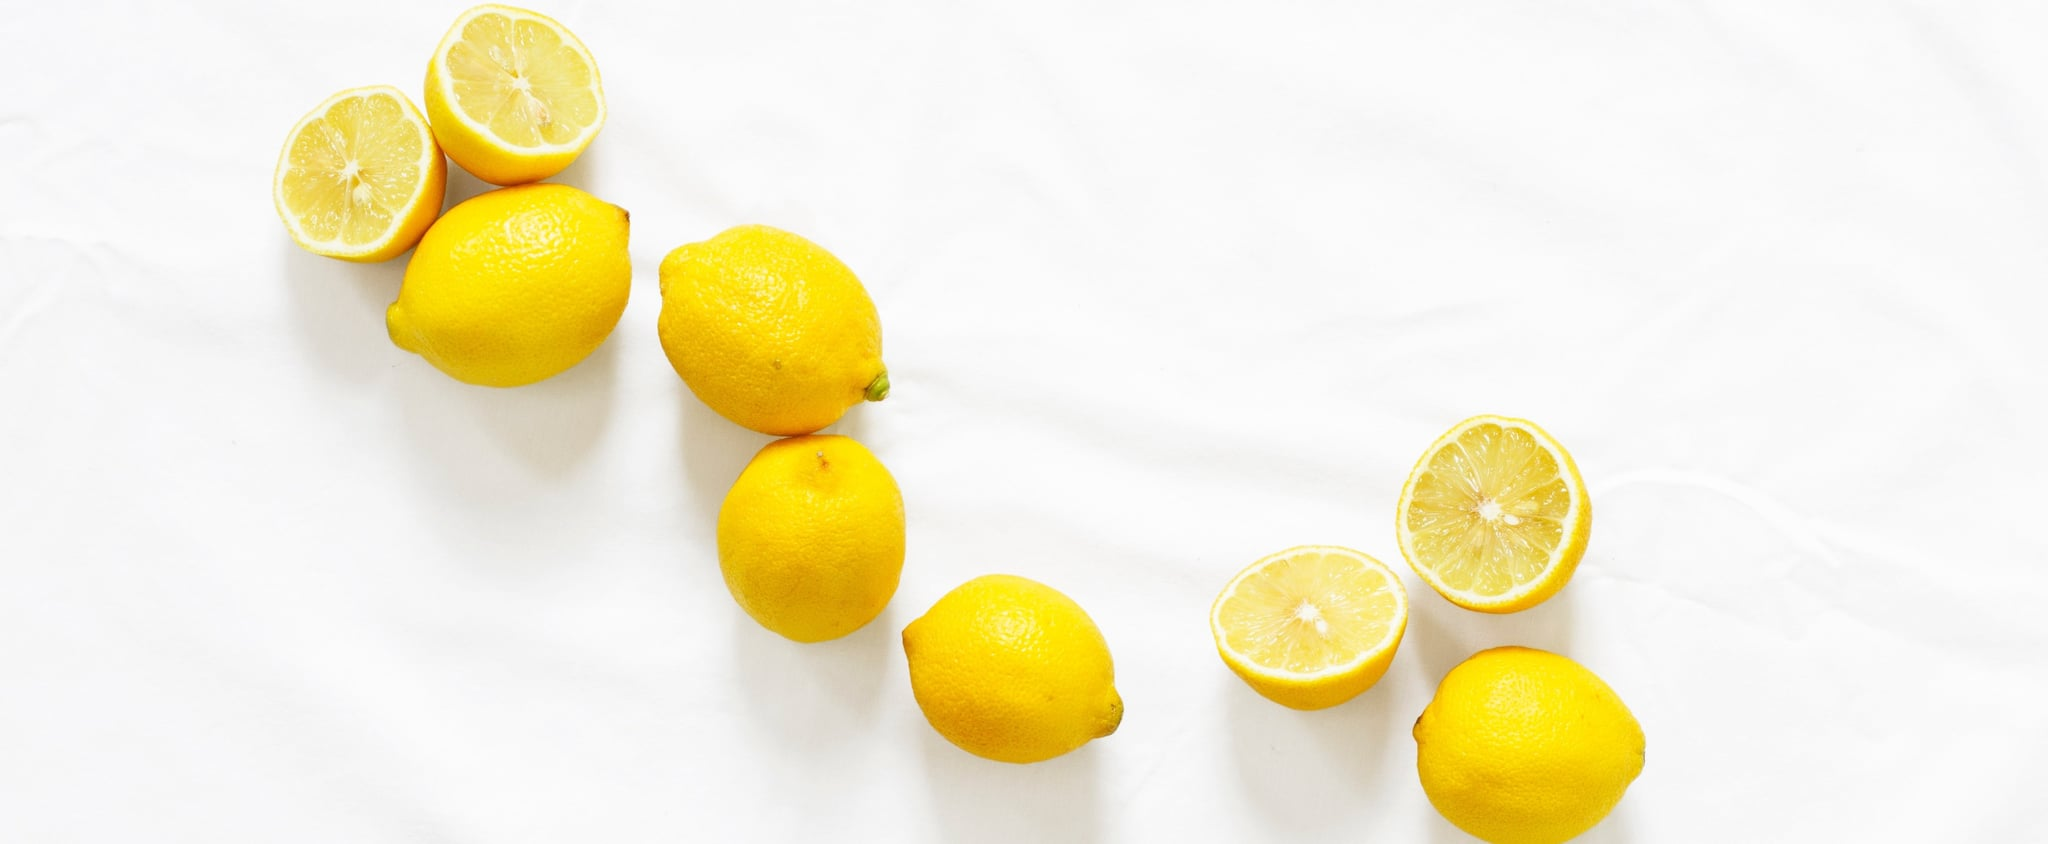 Is Lemon Water Actually Good For You?